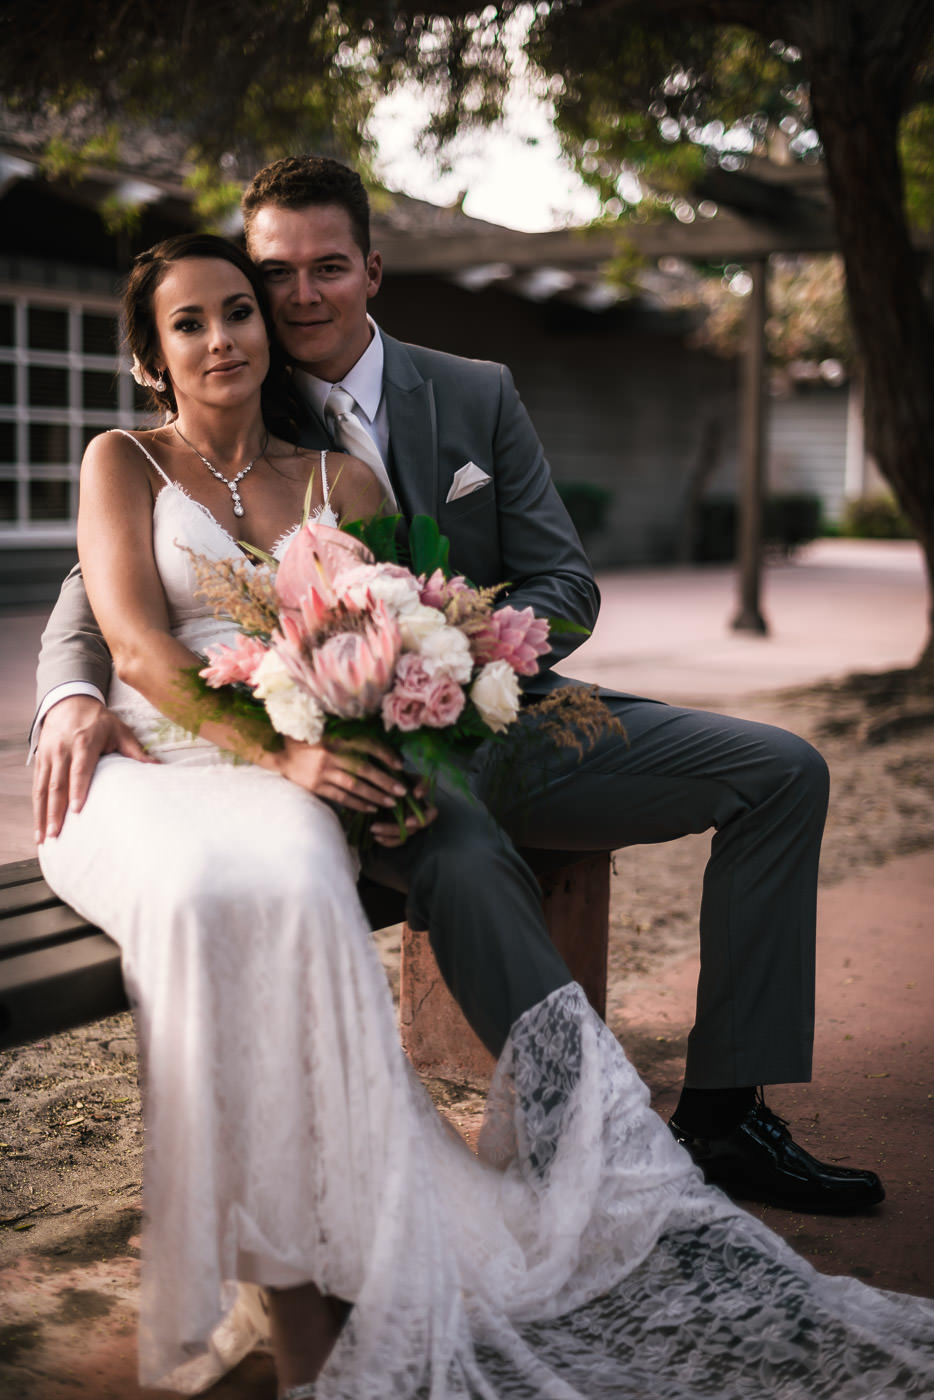 Beautiful newlyweds sit on a bench and pose for a timeless portrait.